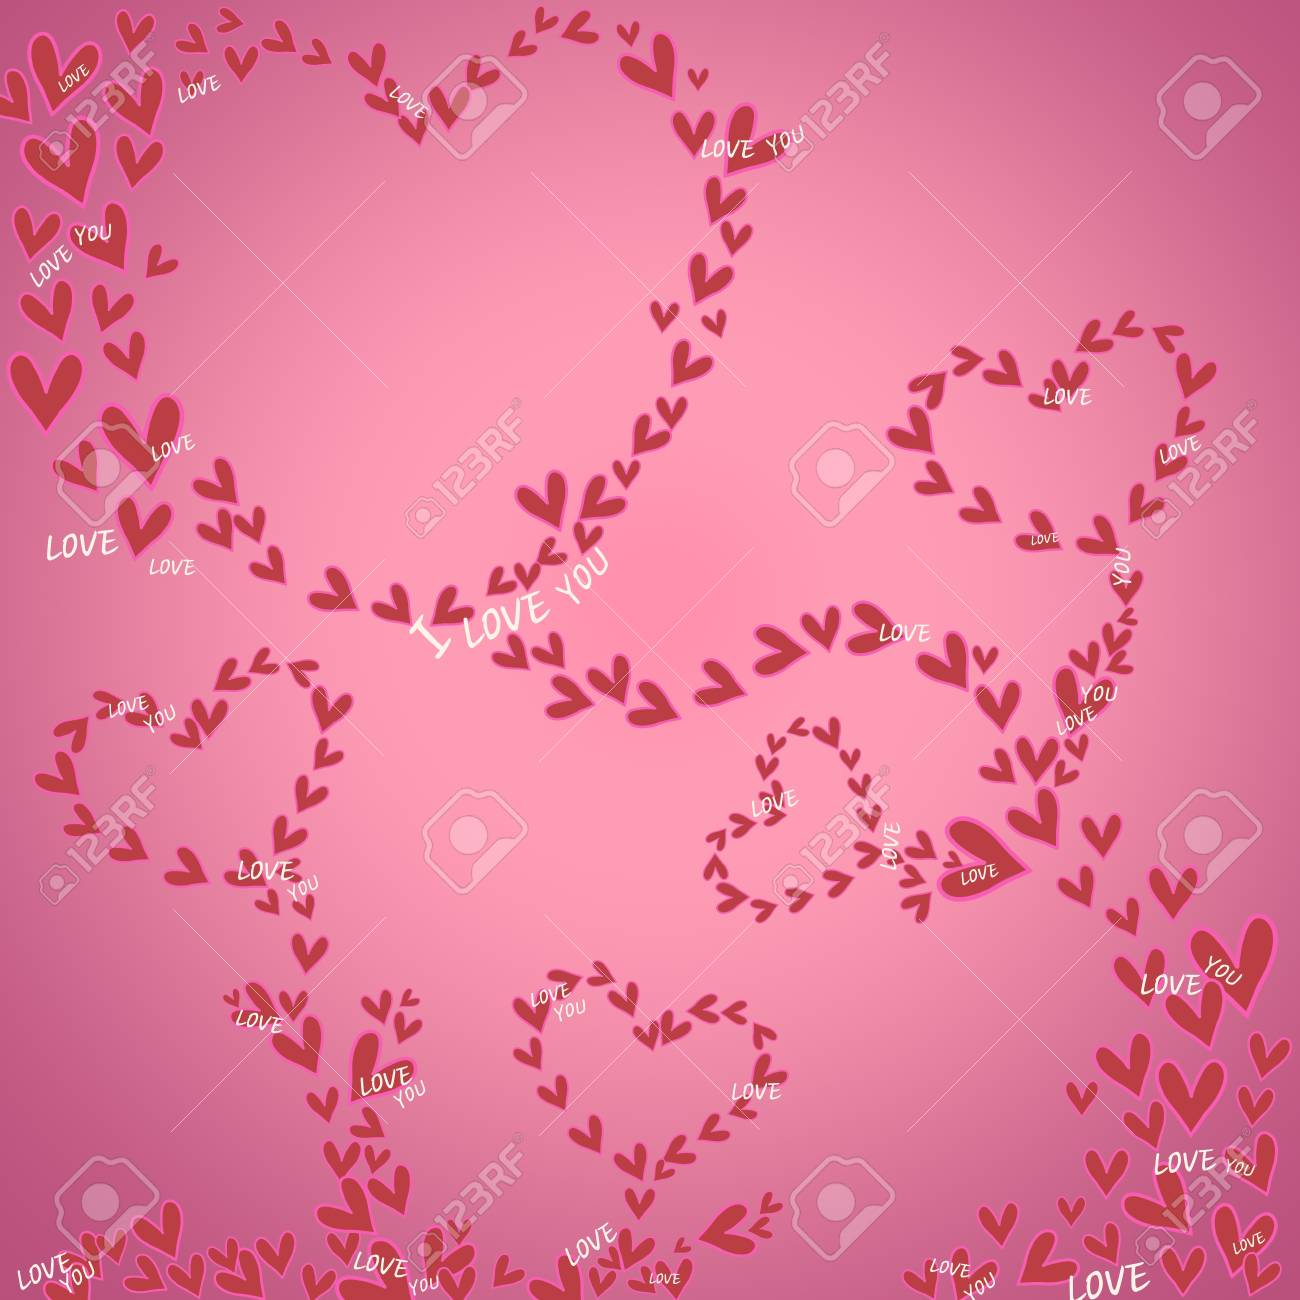 Mini Heart With Pink On Background For Banner Valentine Day Design